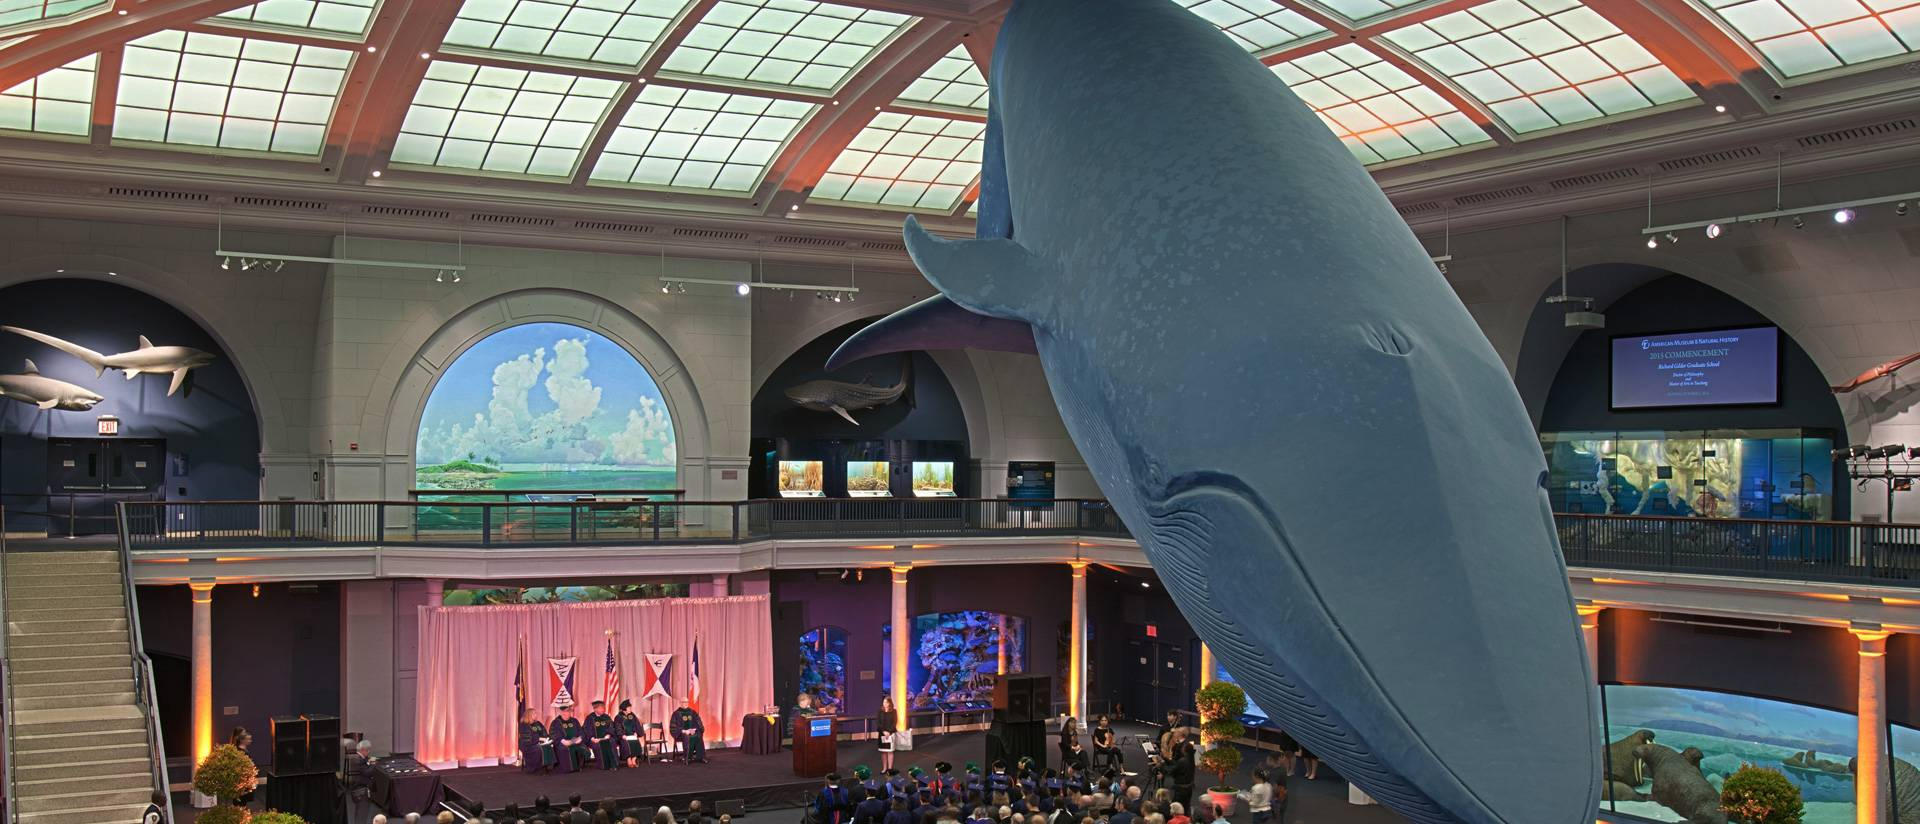 Commencement at American Museum of Natural History